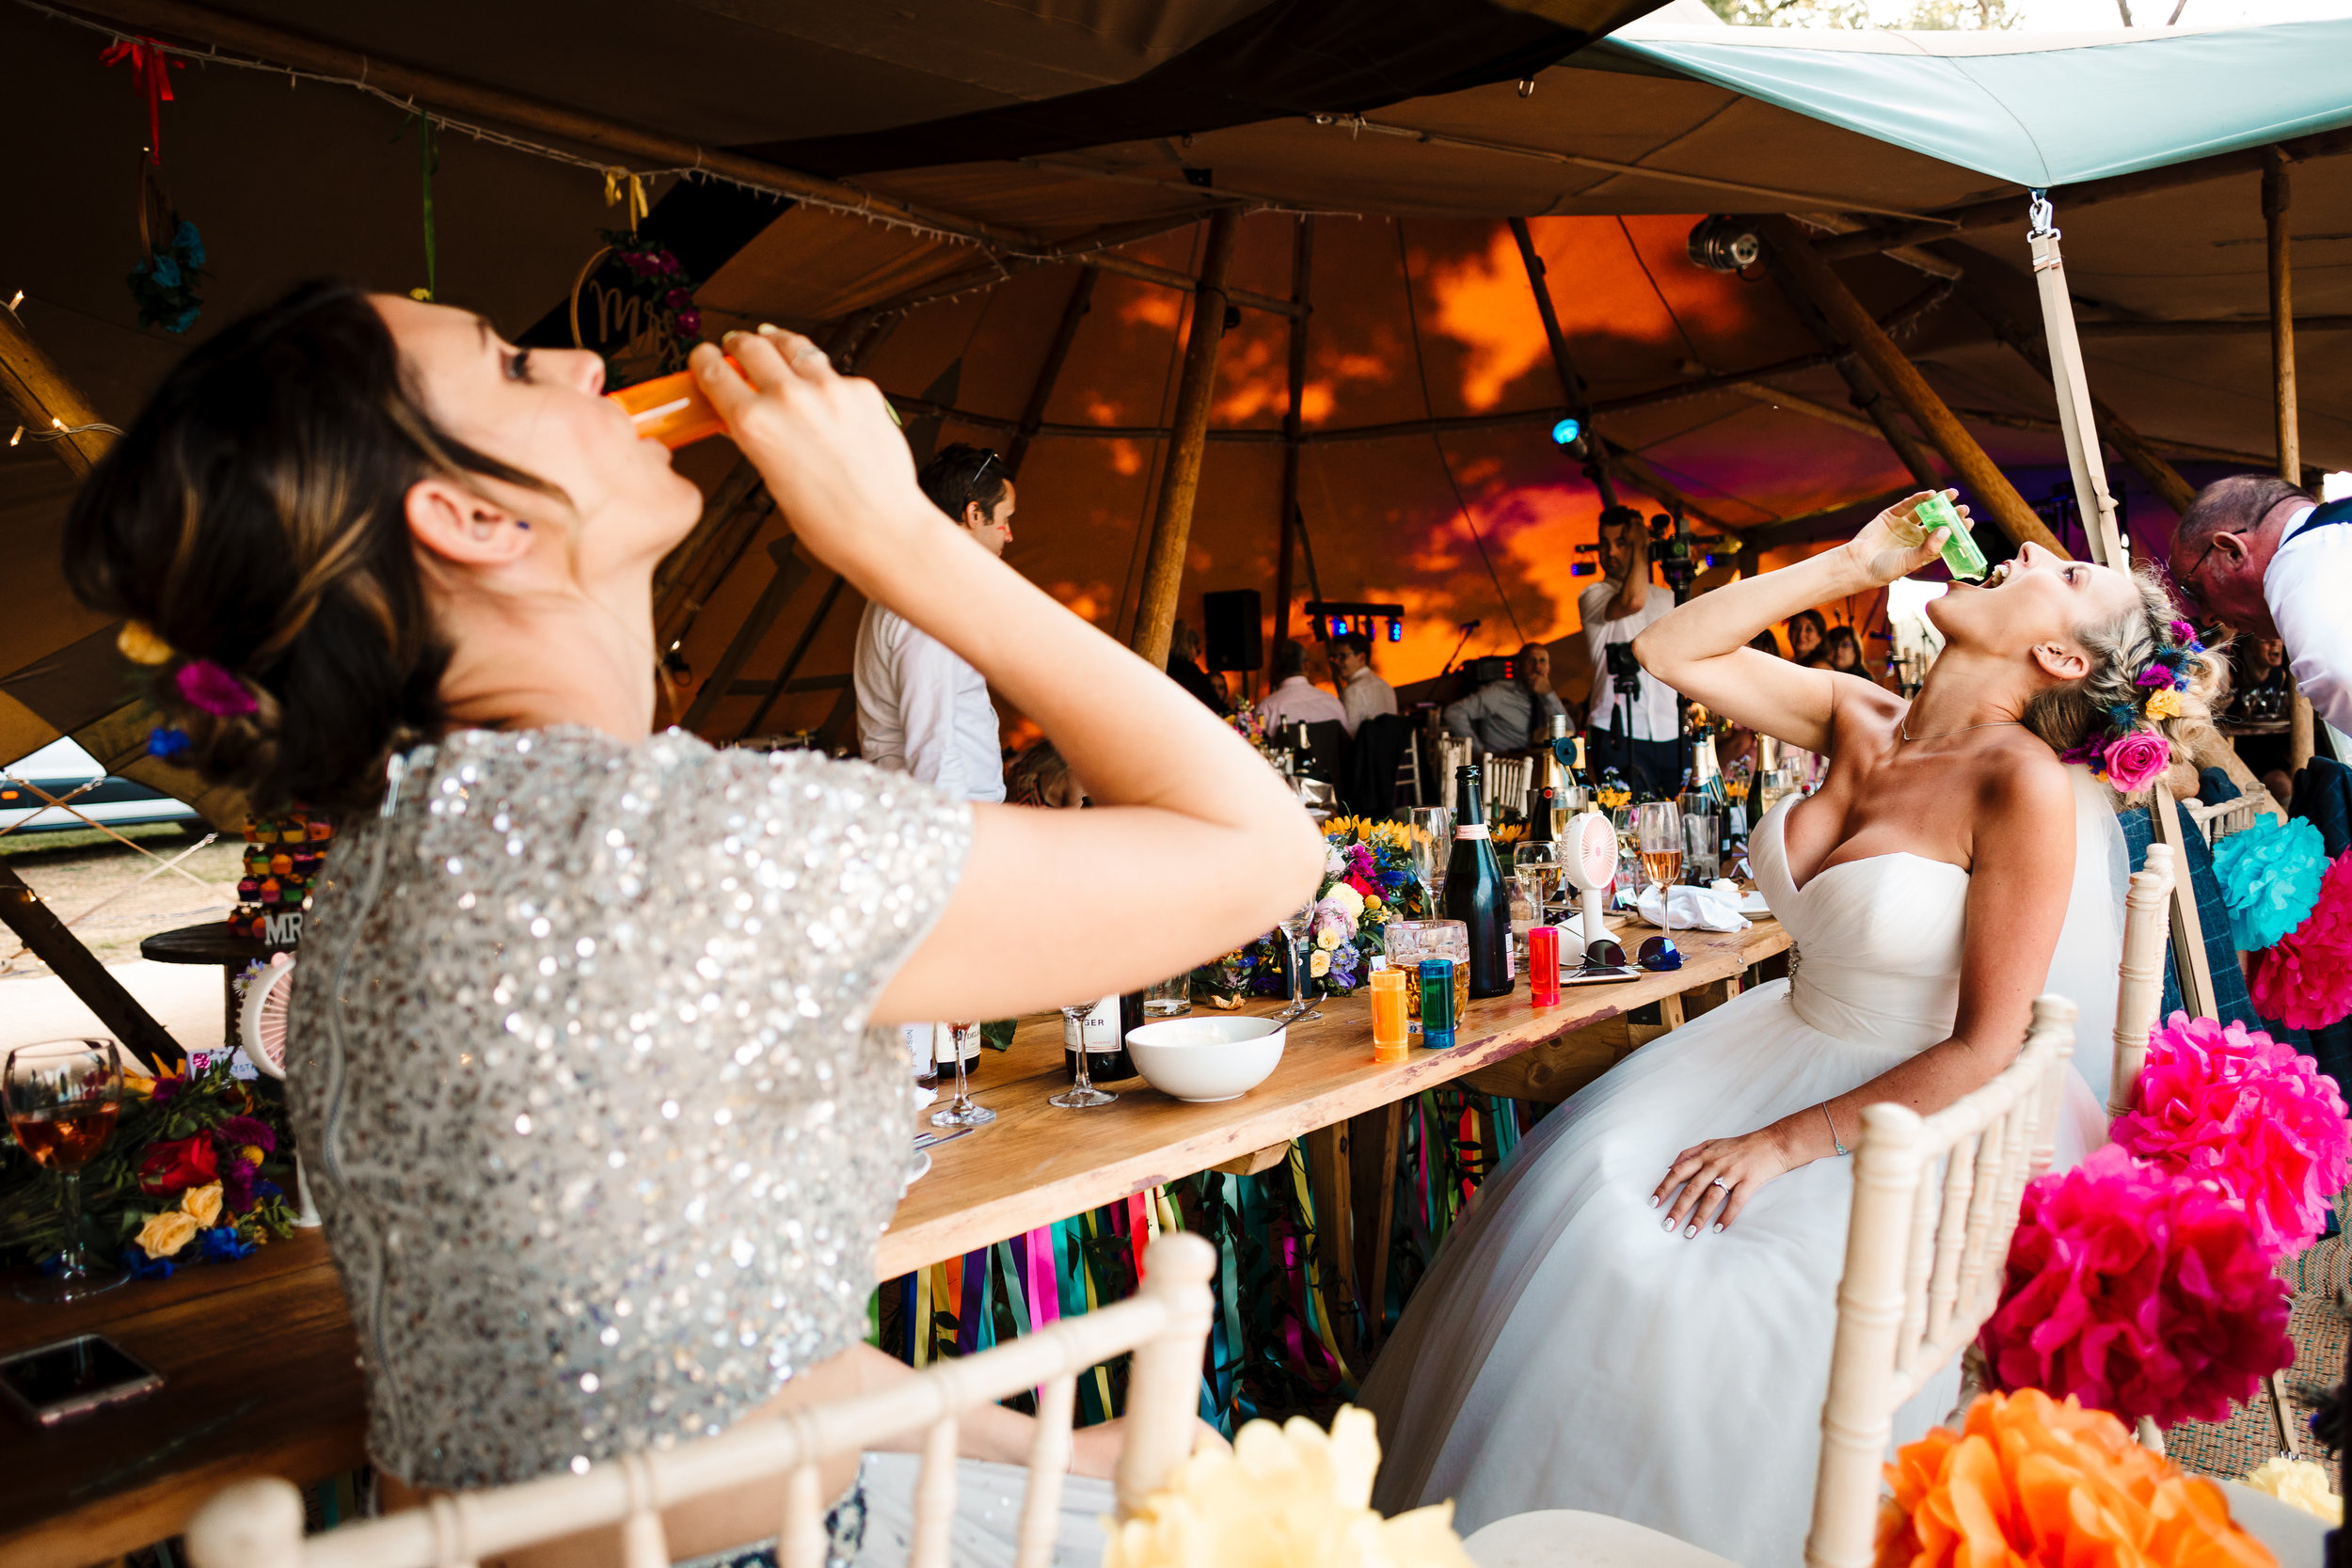 A bride and bridesmaid drinking shots in a tipi